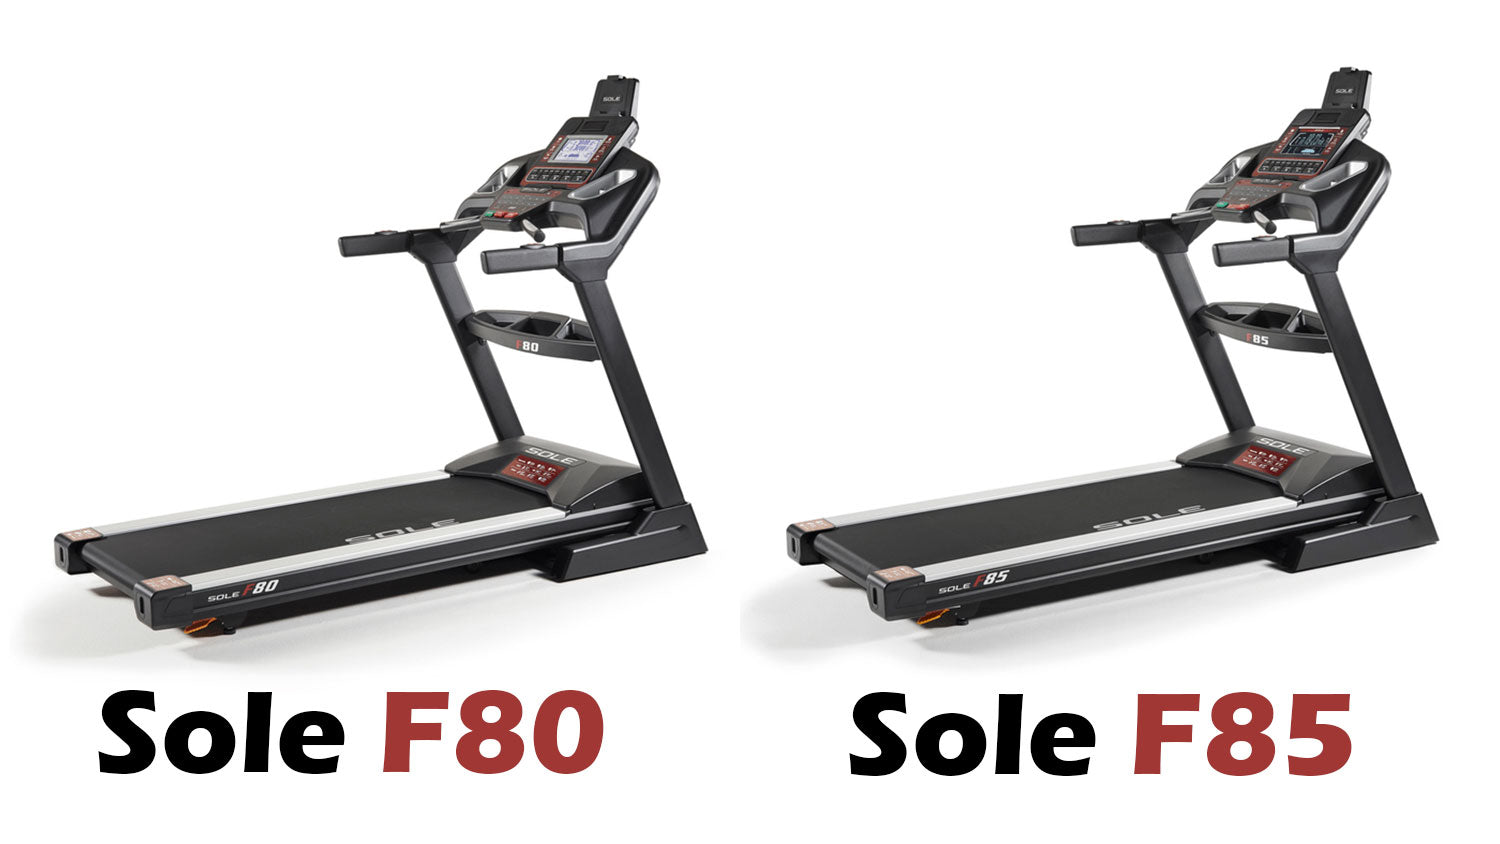 Sole F80 vs Sole F85 Treadmill Comparison